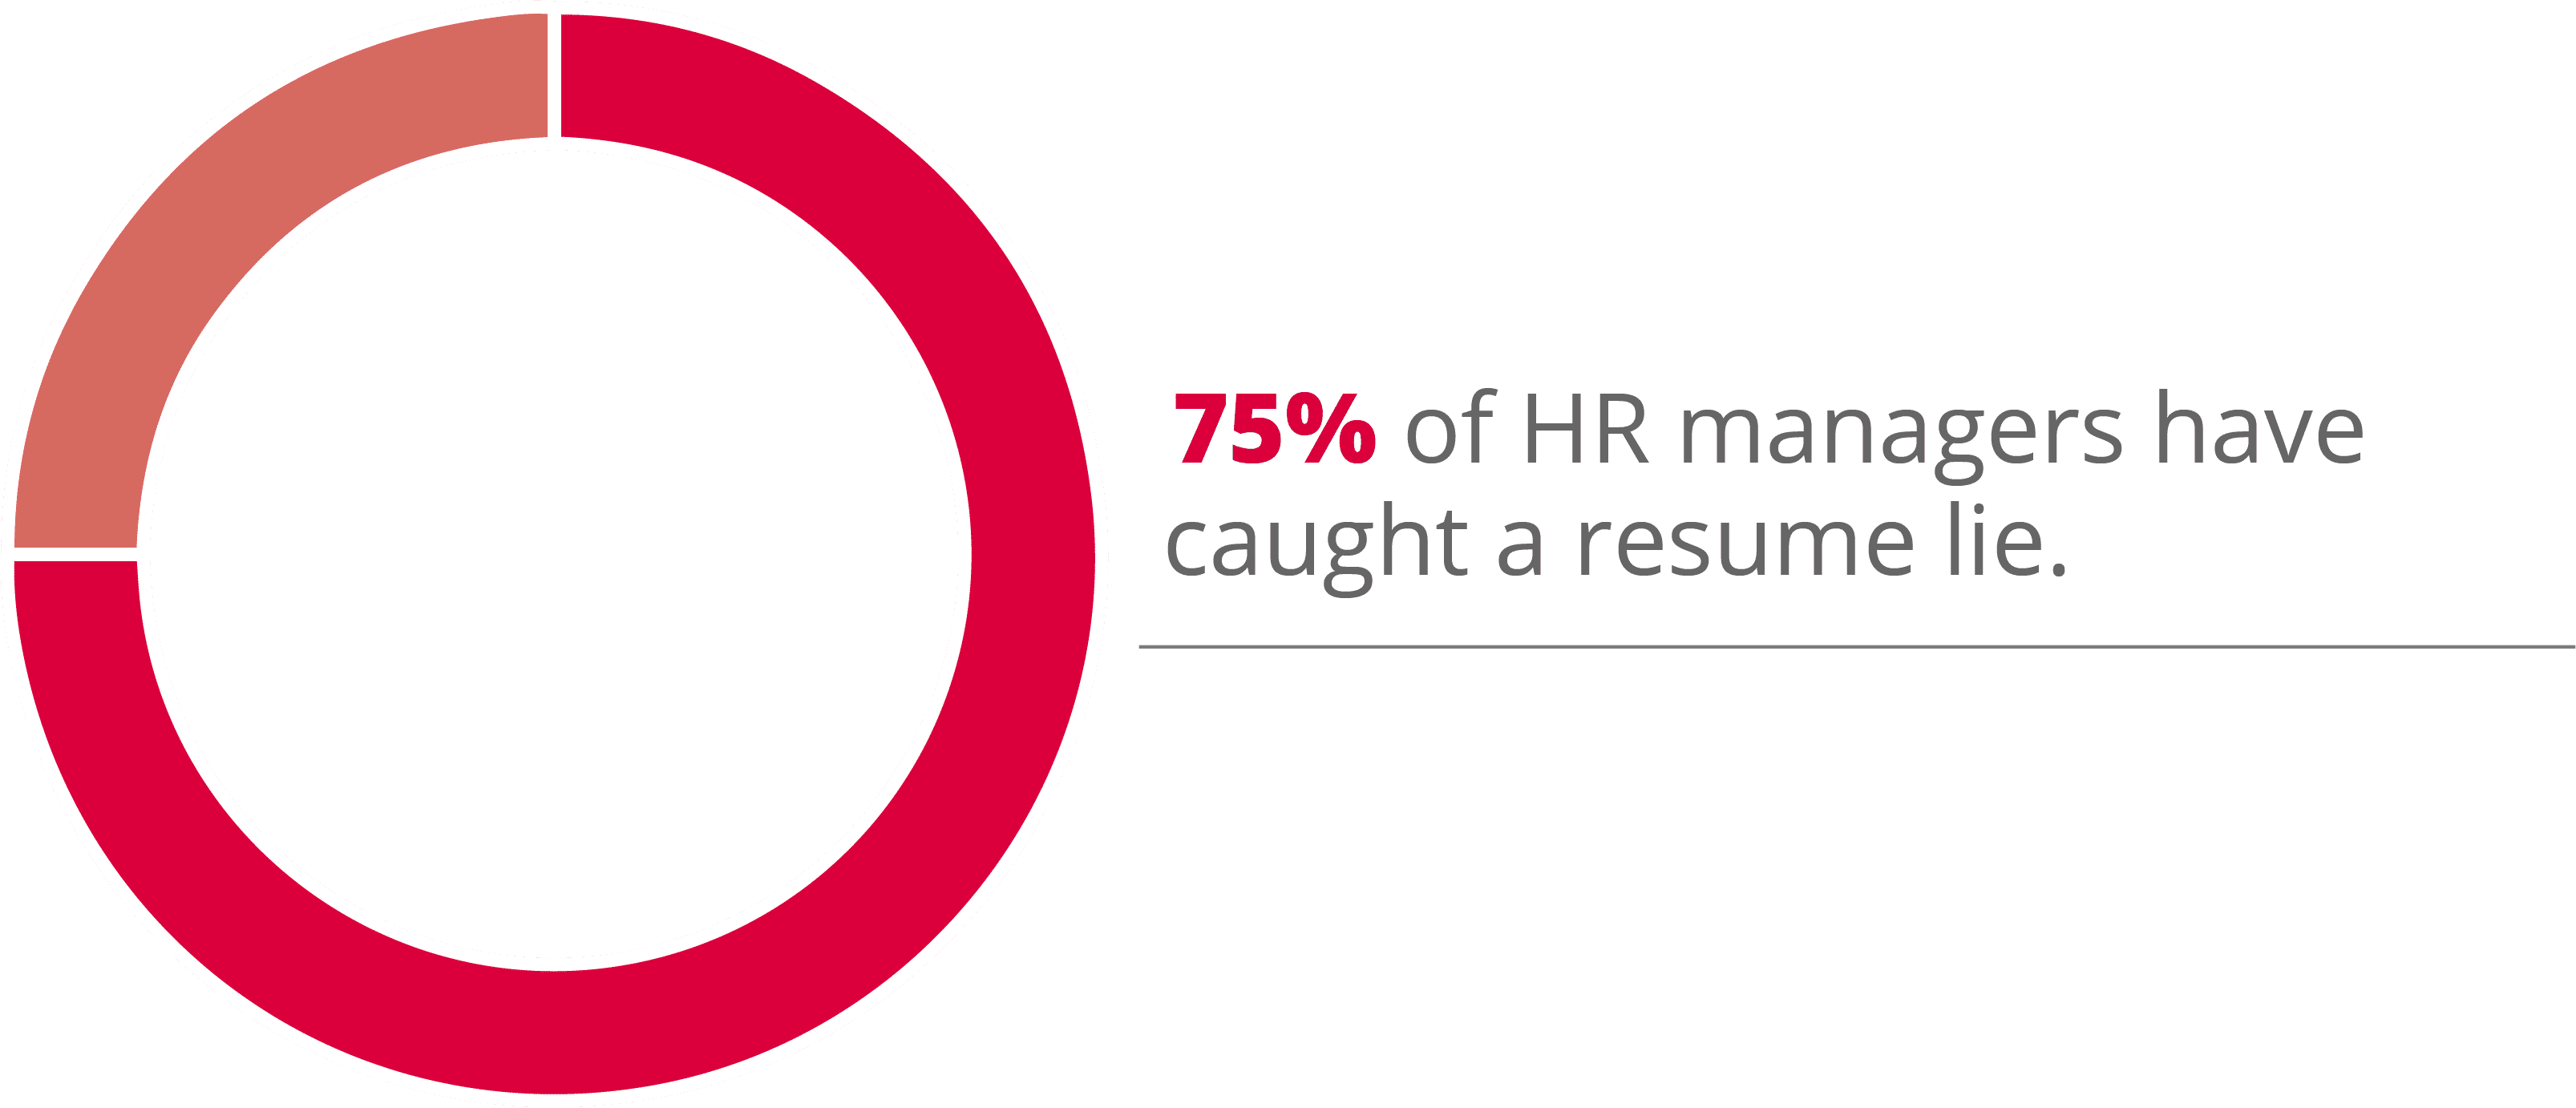 75% of HR managers have caught a resume lie